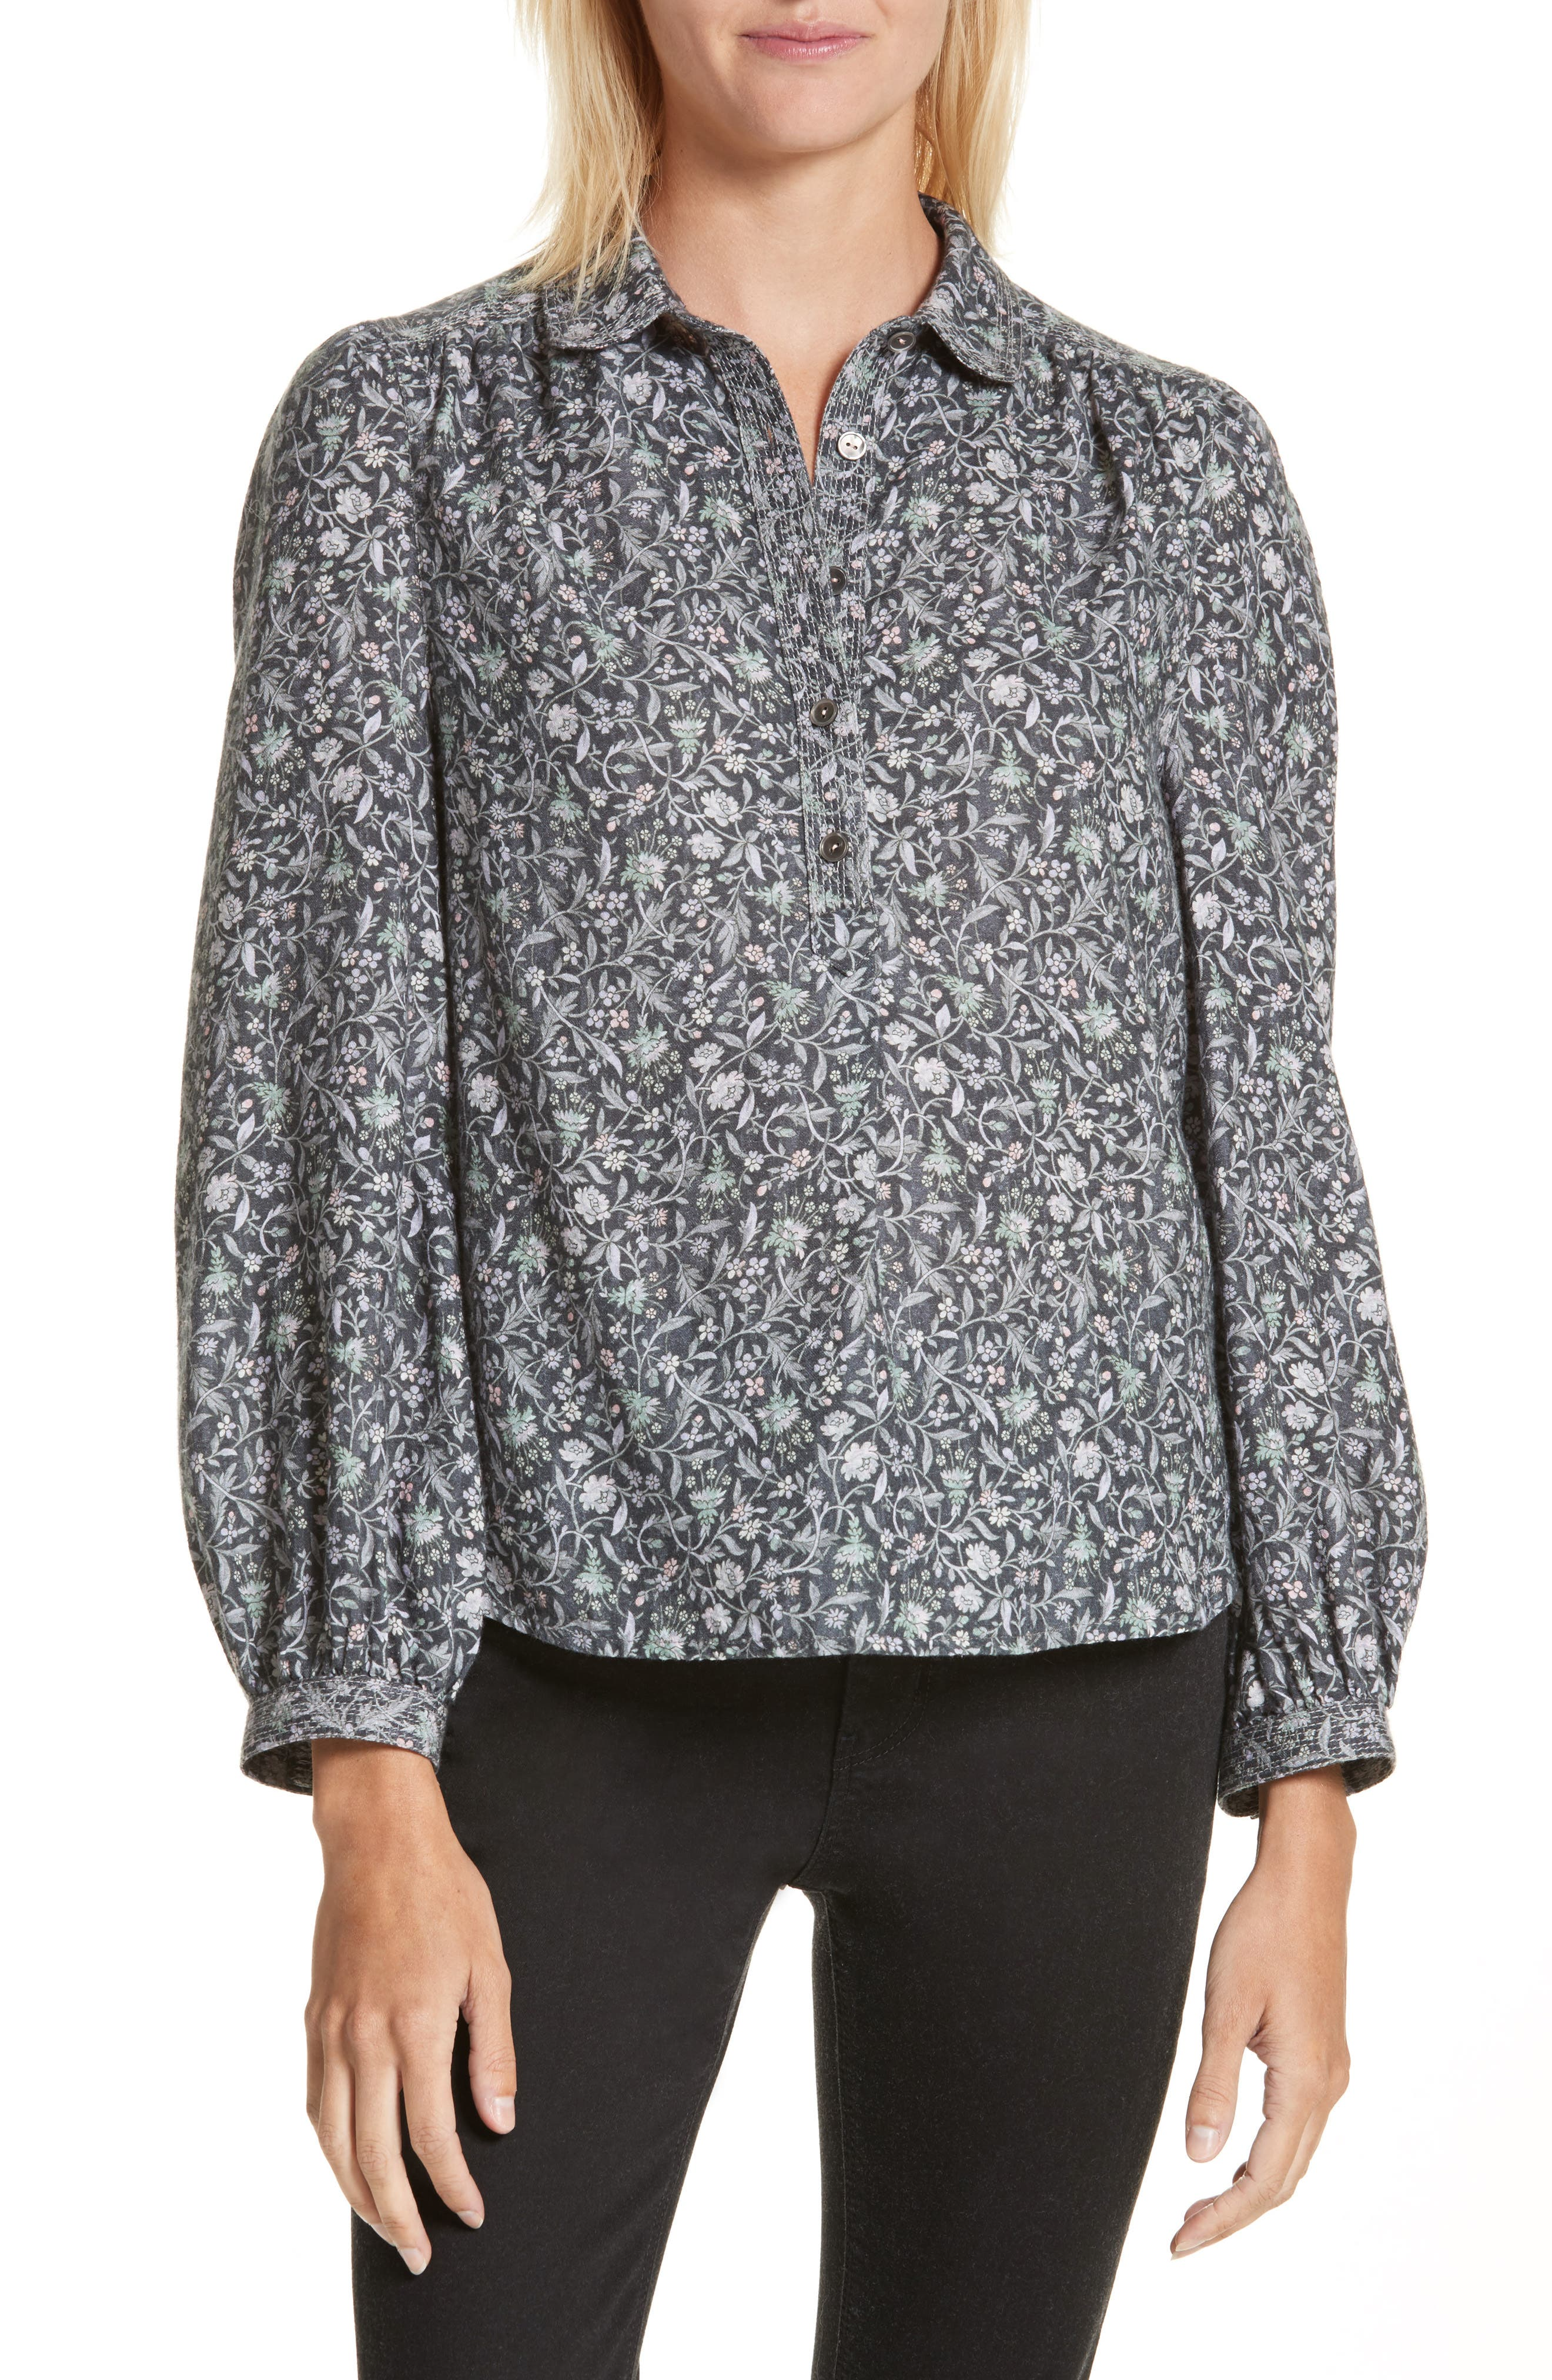 Adeline Long Sleeve Blouse,                         Main,                         color, Washed Black Combo